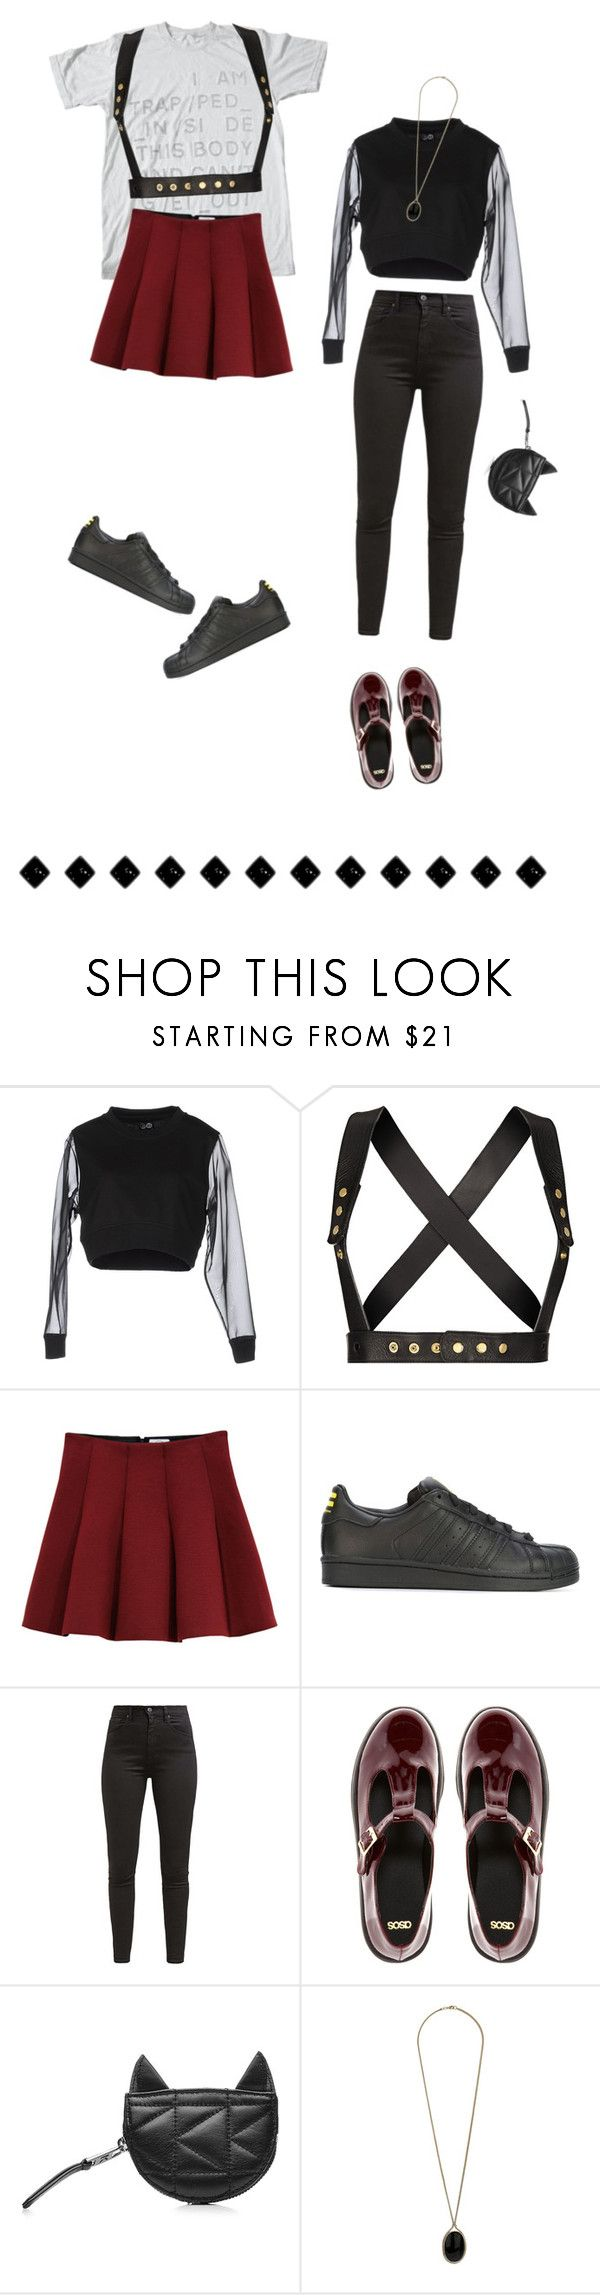 """baby you're so classic"" by weirdestgirlever ❤ liked on Polyvore featuring Cheap Monday, Zana Bayne, Outstanding Ordinary, adidas Originals, Levi's, ASOS, Karl Lagerfeld and Wallis"